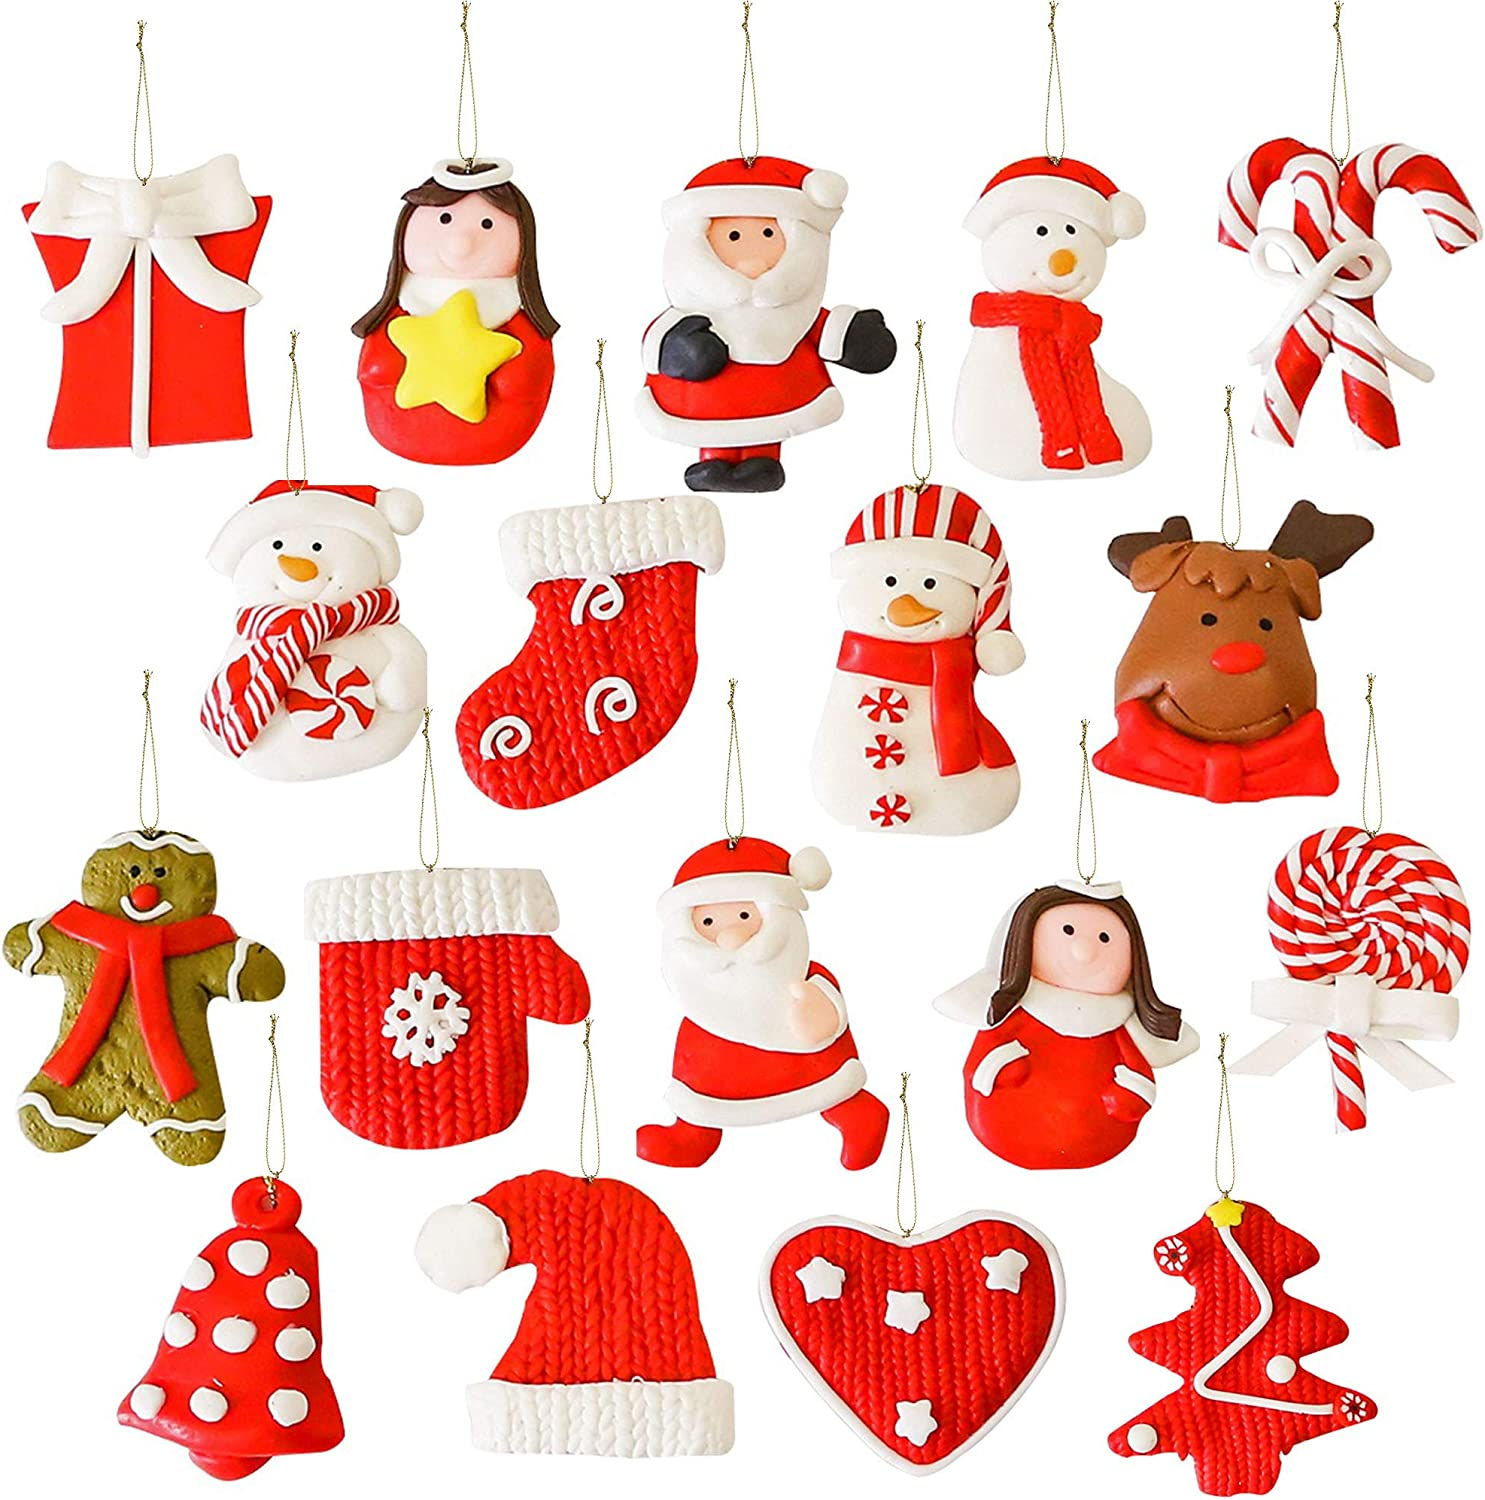 GiveU Christmas Ornaments Pendant,18 Pack Gingerbread/Snowman/Angel/Santa Claus Clay Characters, Hanging Ornaments for Christmas Tree Decor, Holiday, Season and Party Decoration Celebrations